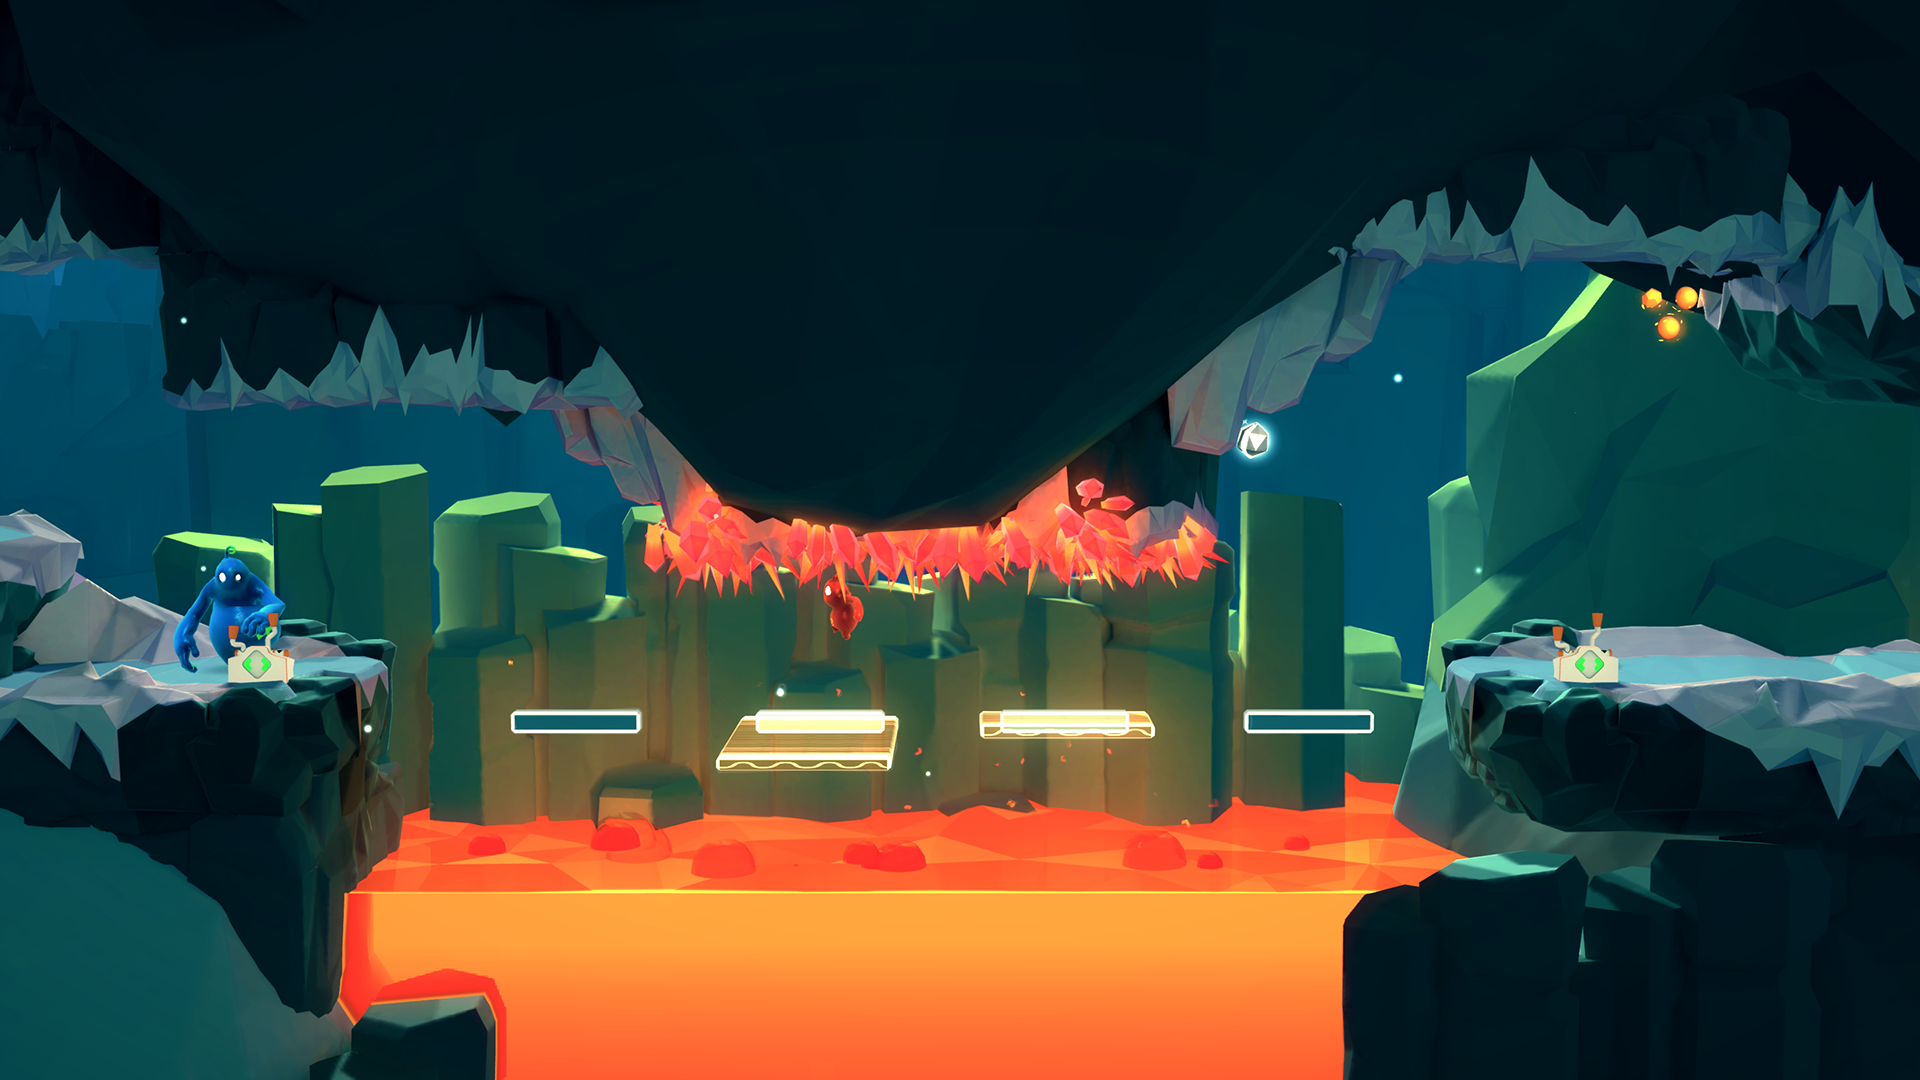 44_shift_happens_grotto_mr_lava_lava_1080p.png